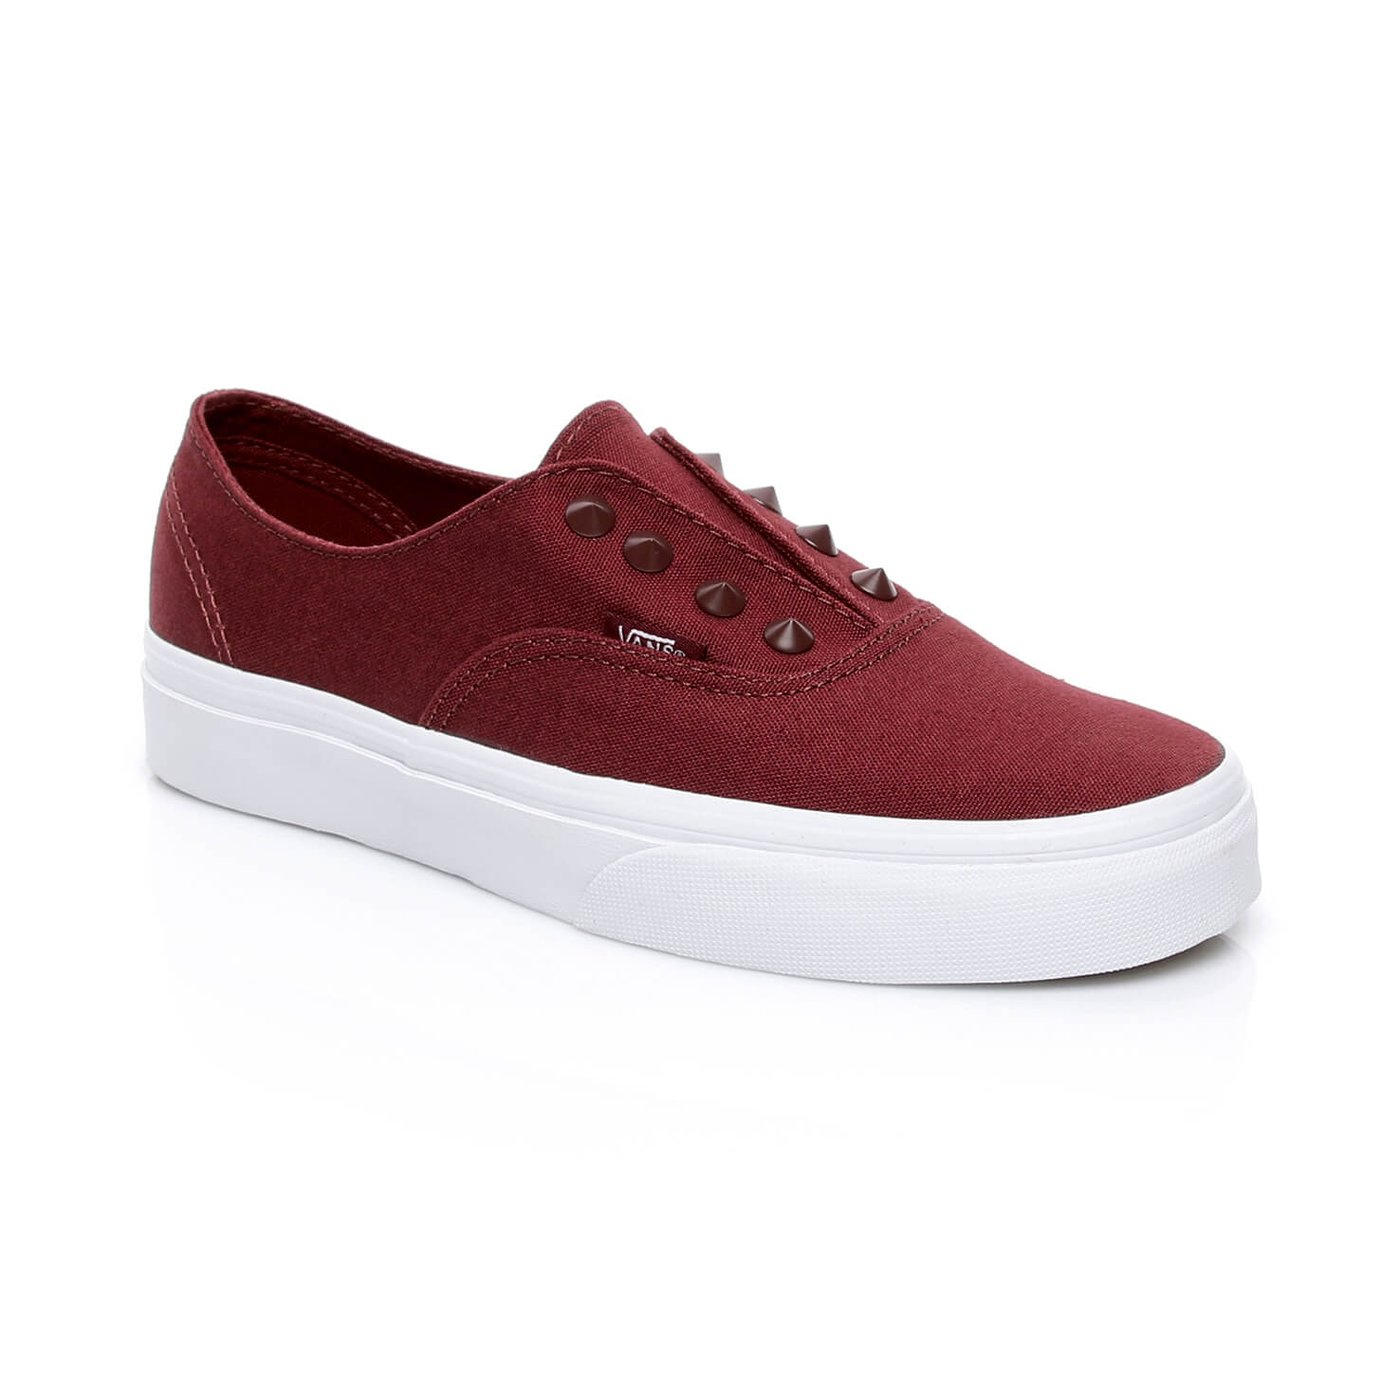 Vans Authentic Kadın Bordo Sneaker